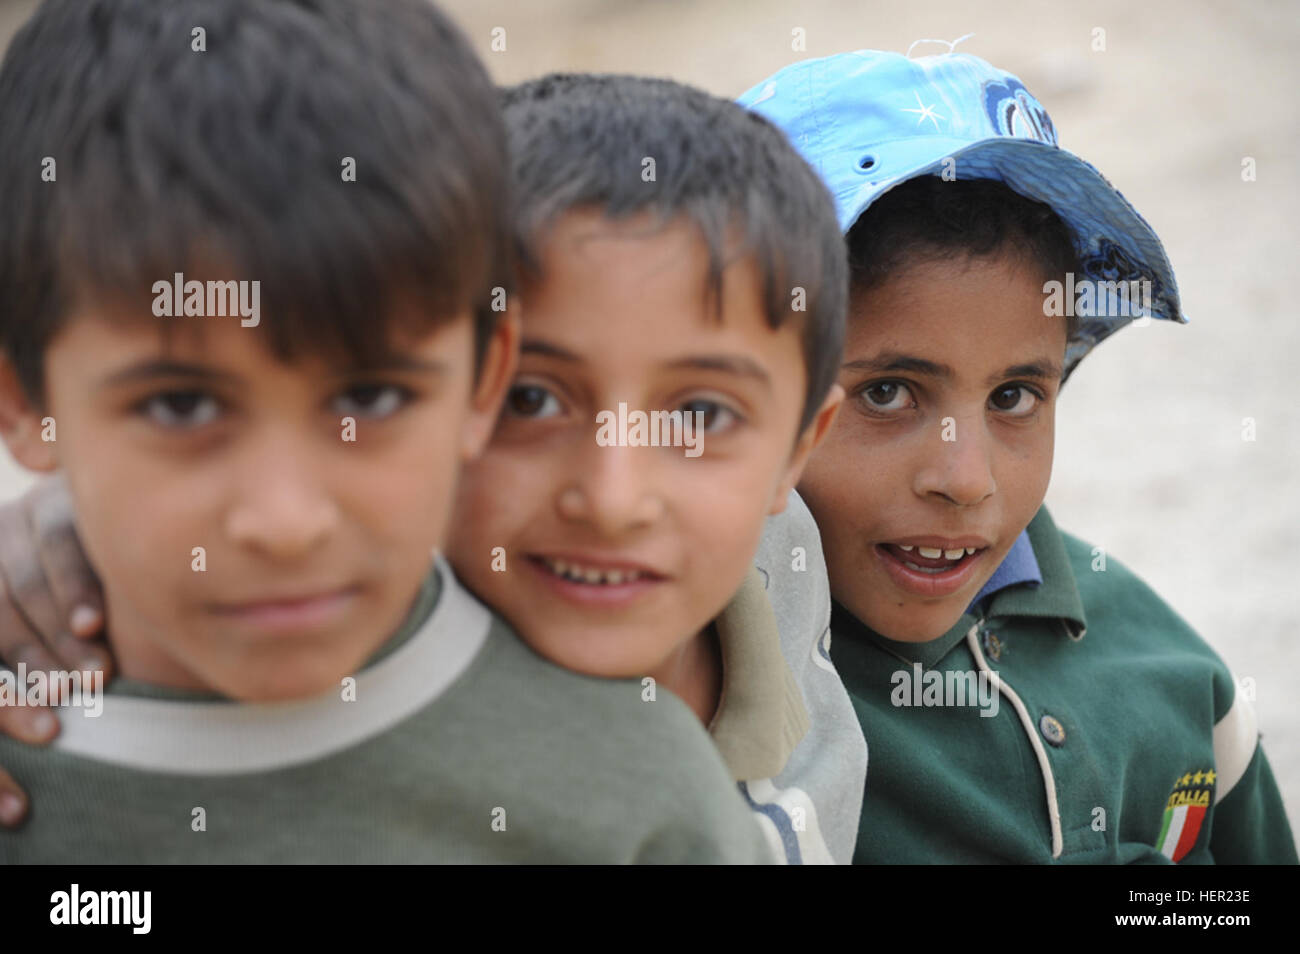 Bravo Boys iraqi boys pose in stock photos iraqi boys pose in